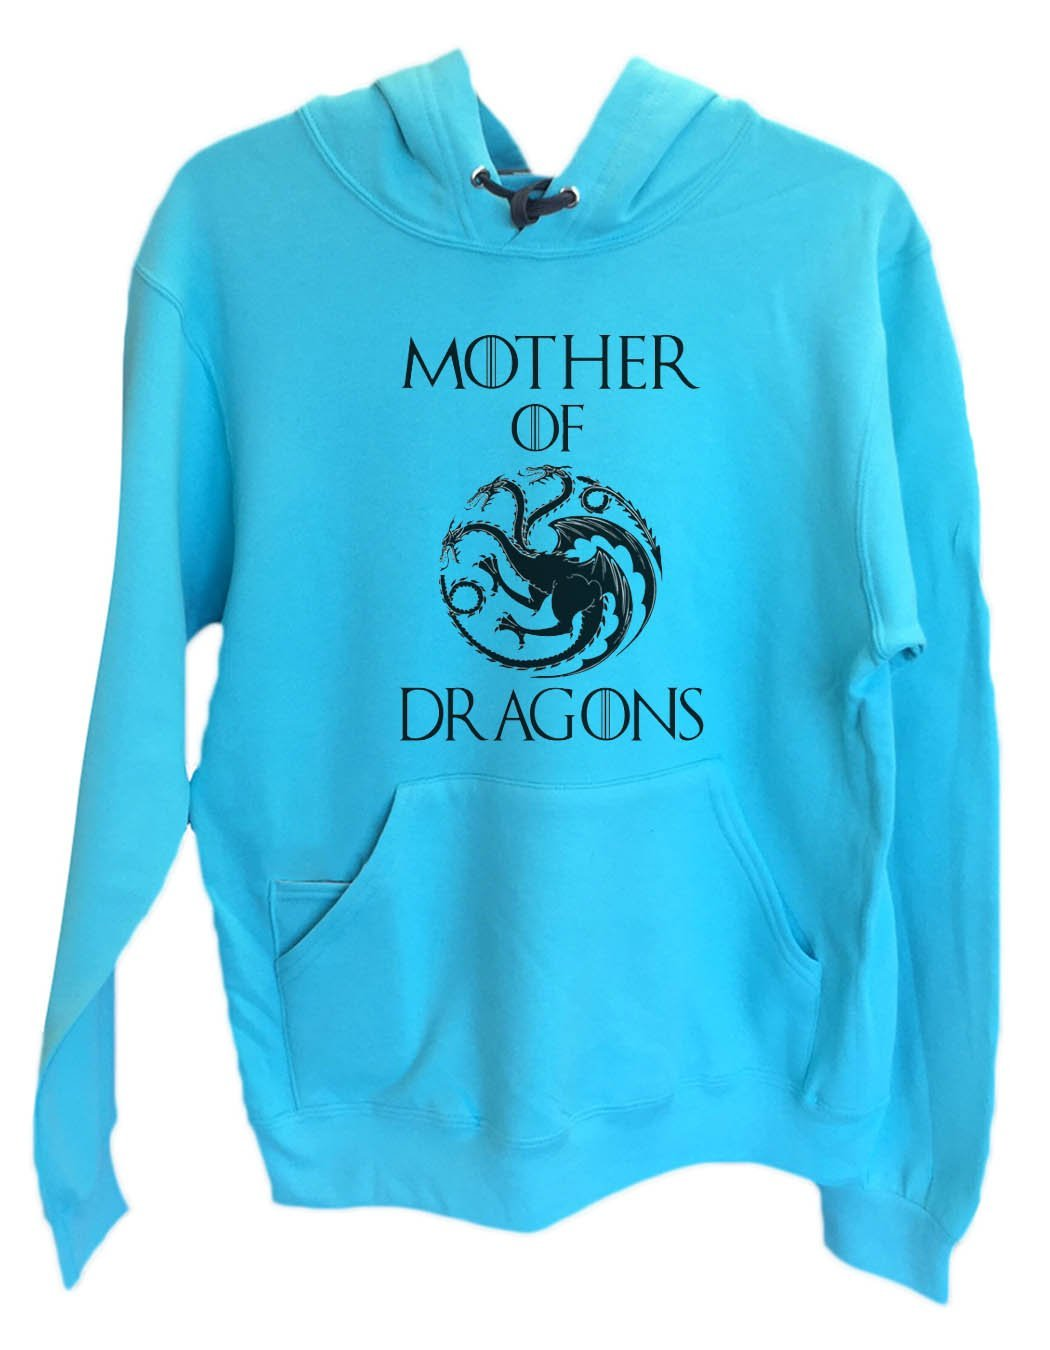 UNISEX HOODIE - Mother Of Dragons - FUNNY MENS AND WOMENS HOODED SWEATSHIRTS - 2775 Funny Shirt Small / Turquoise